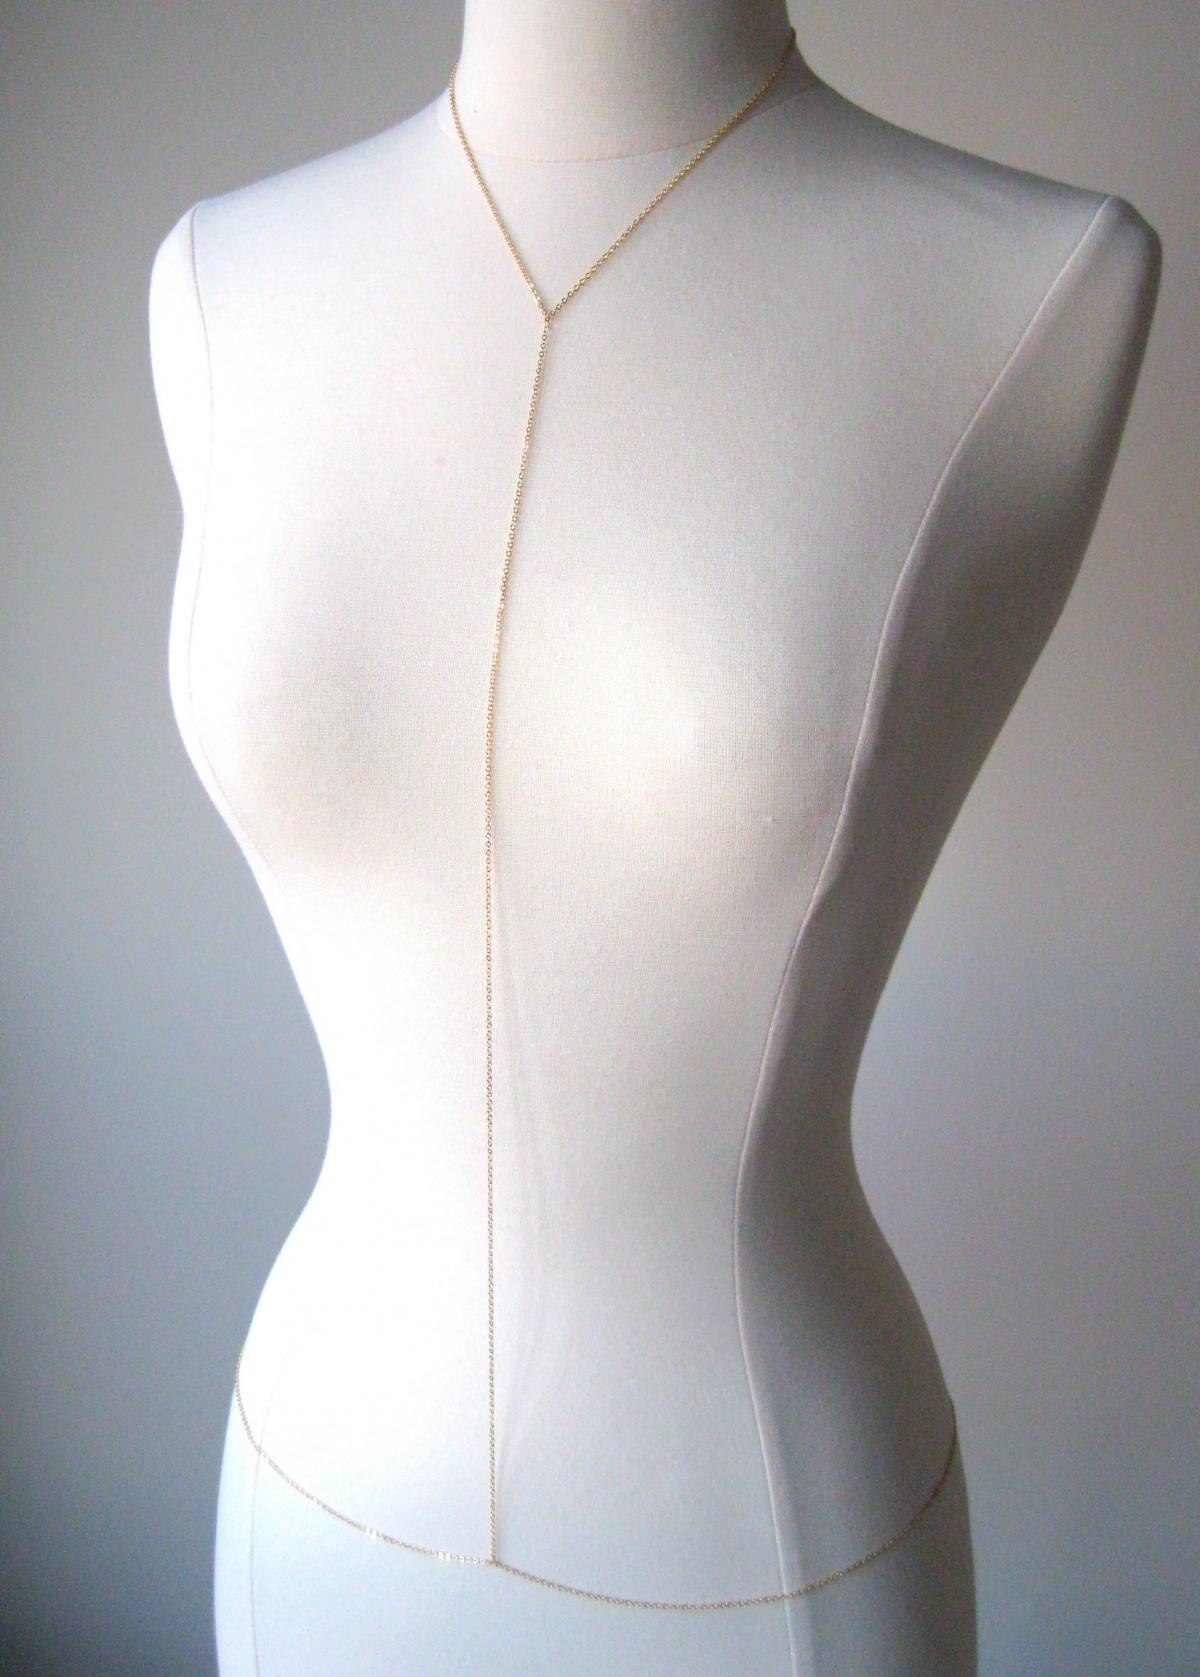 16k Gold Plated Body Chain